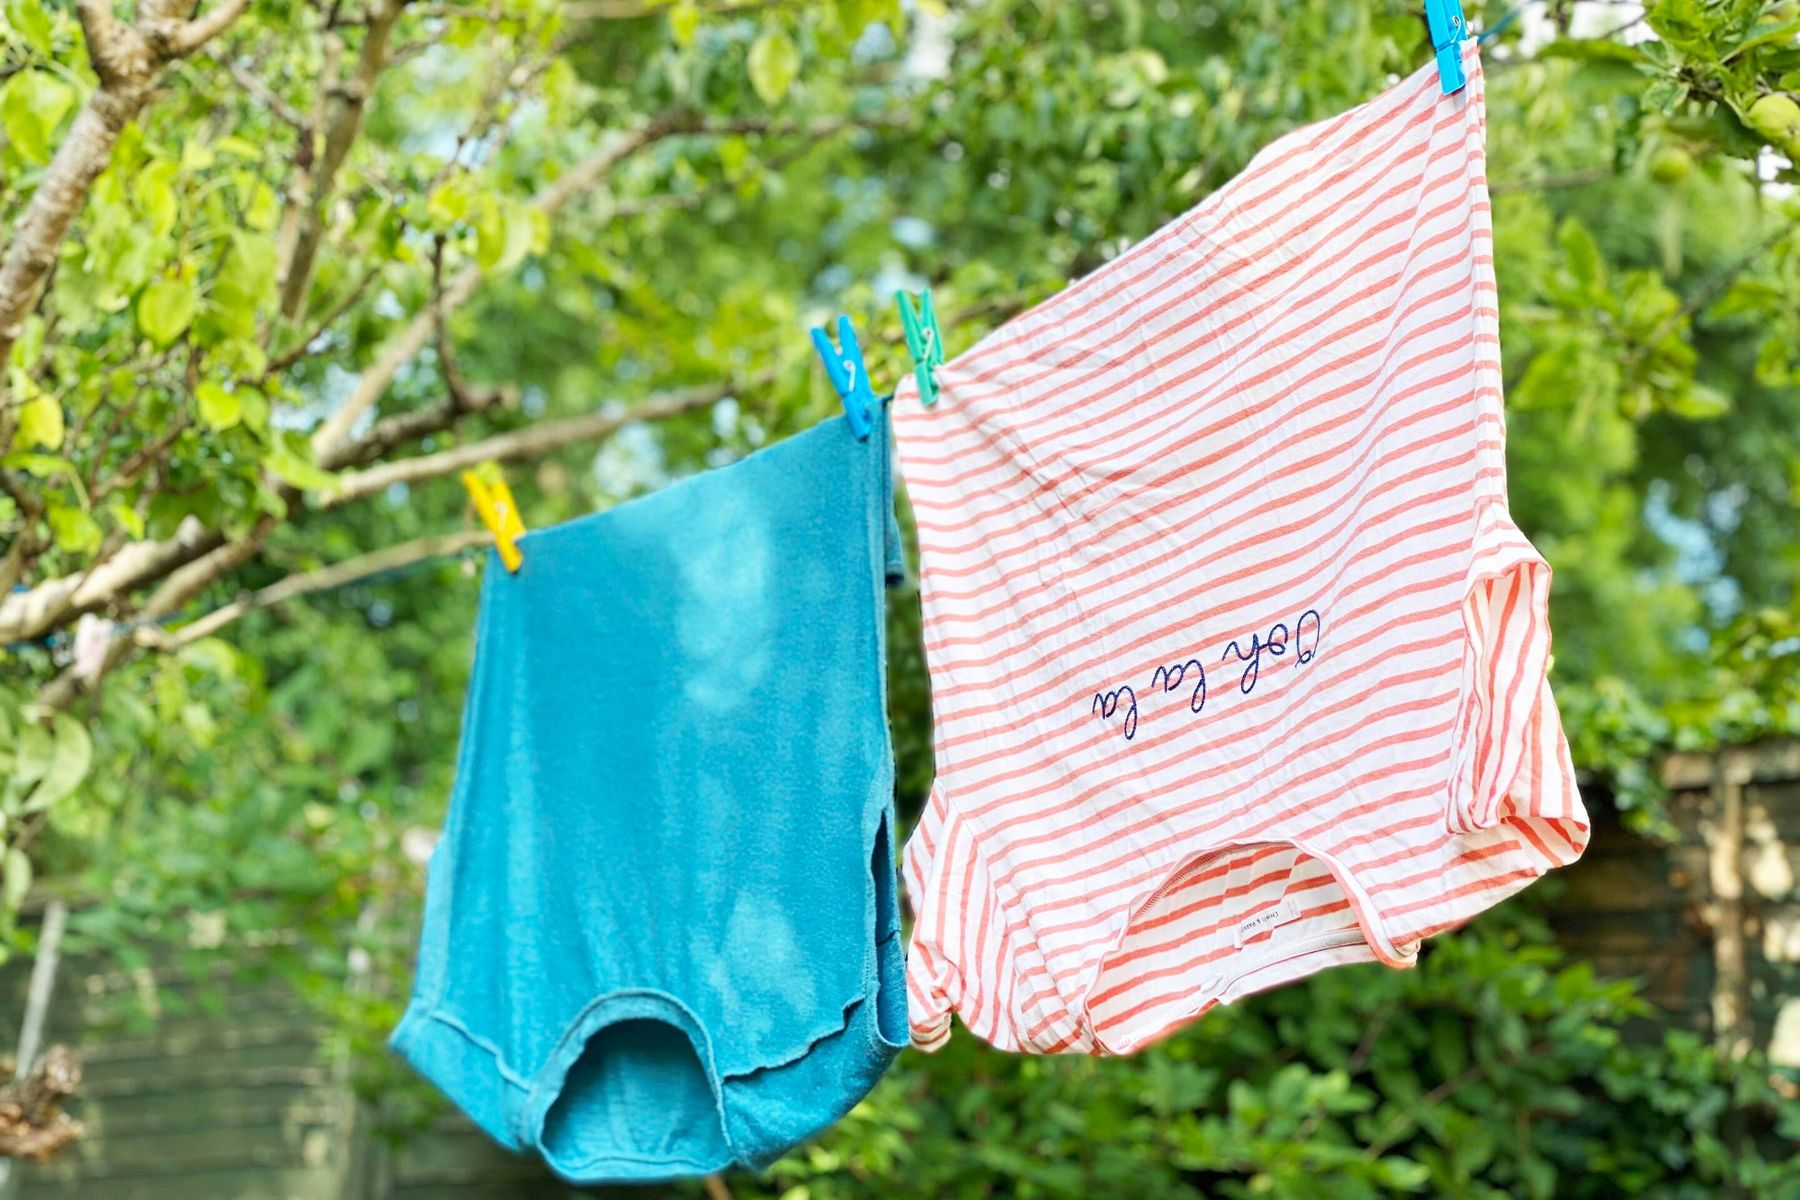 Tops on a washing line outside